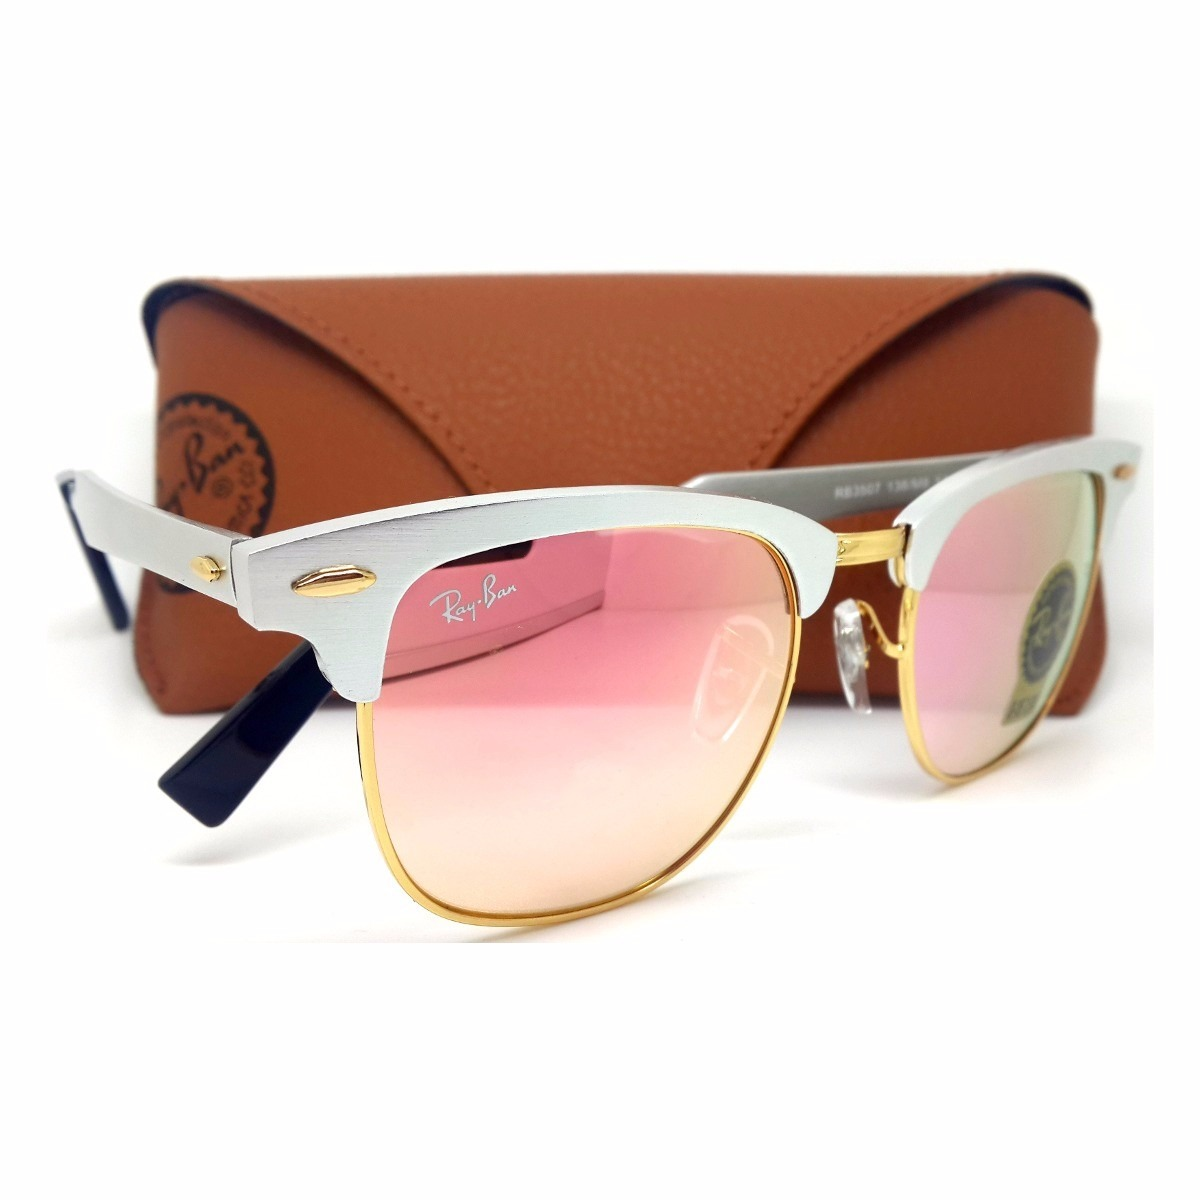 ecf763756f3d0 ... valor do ray ban clubmaster ...